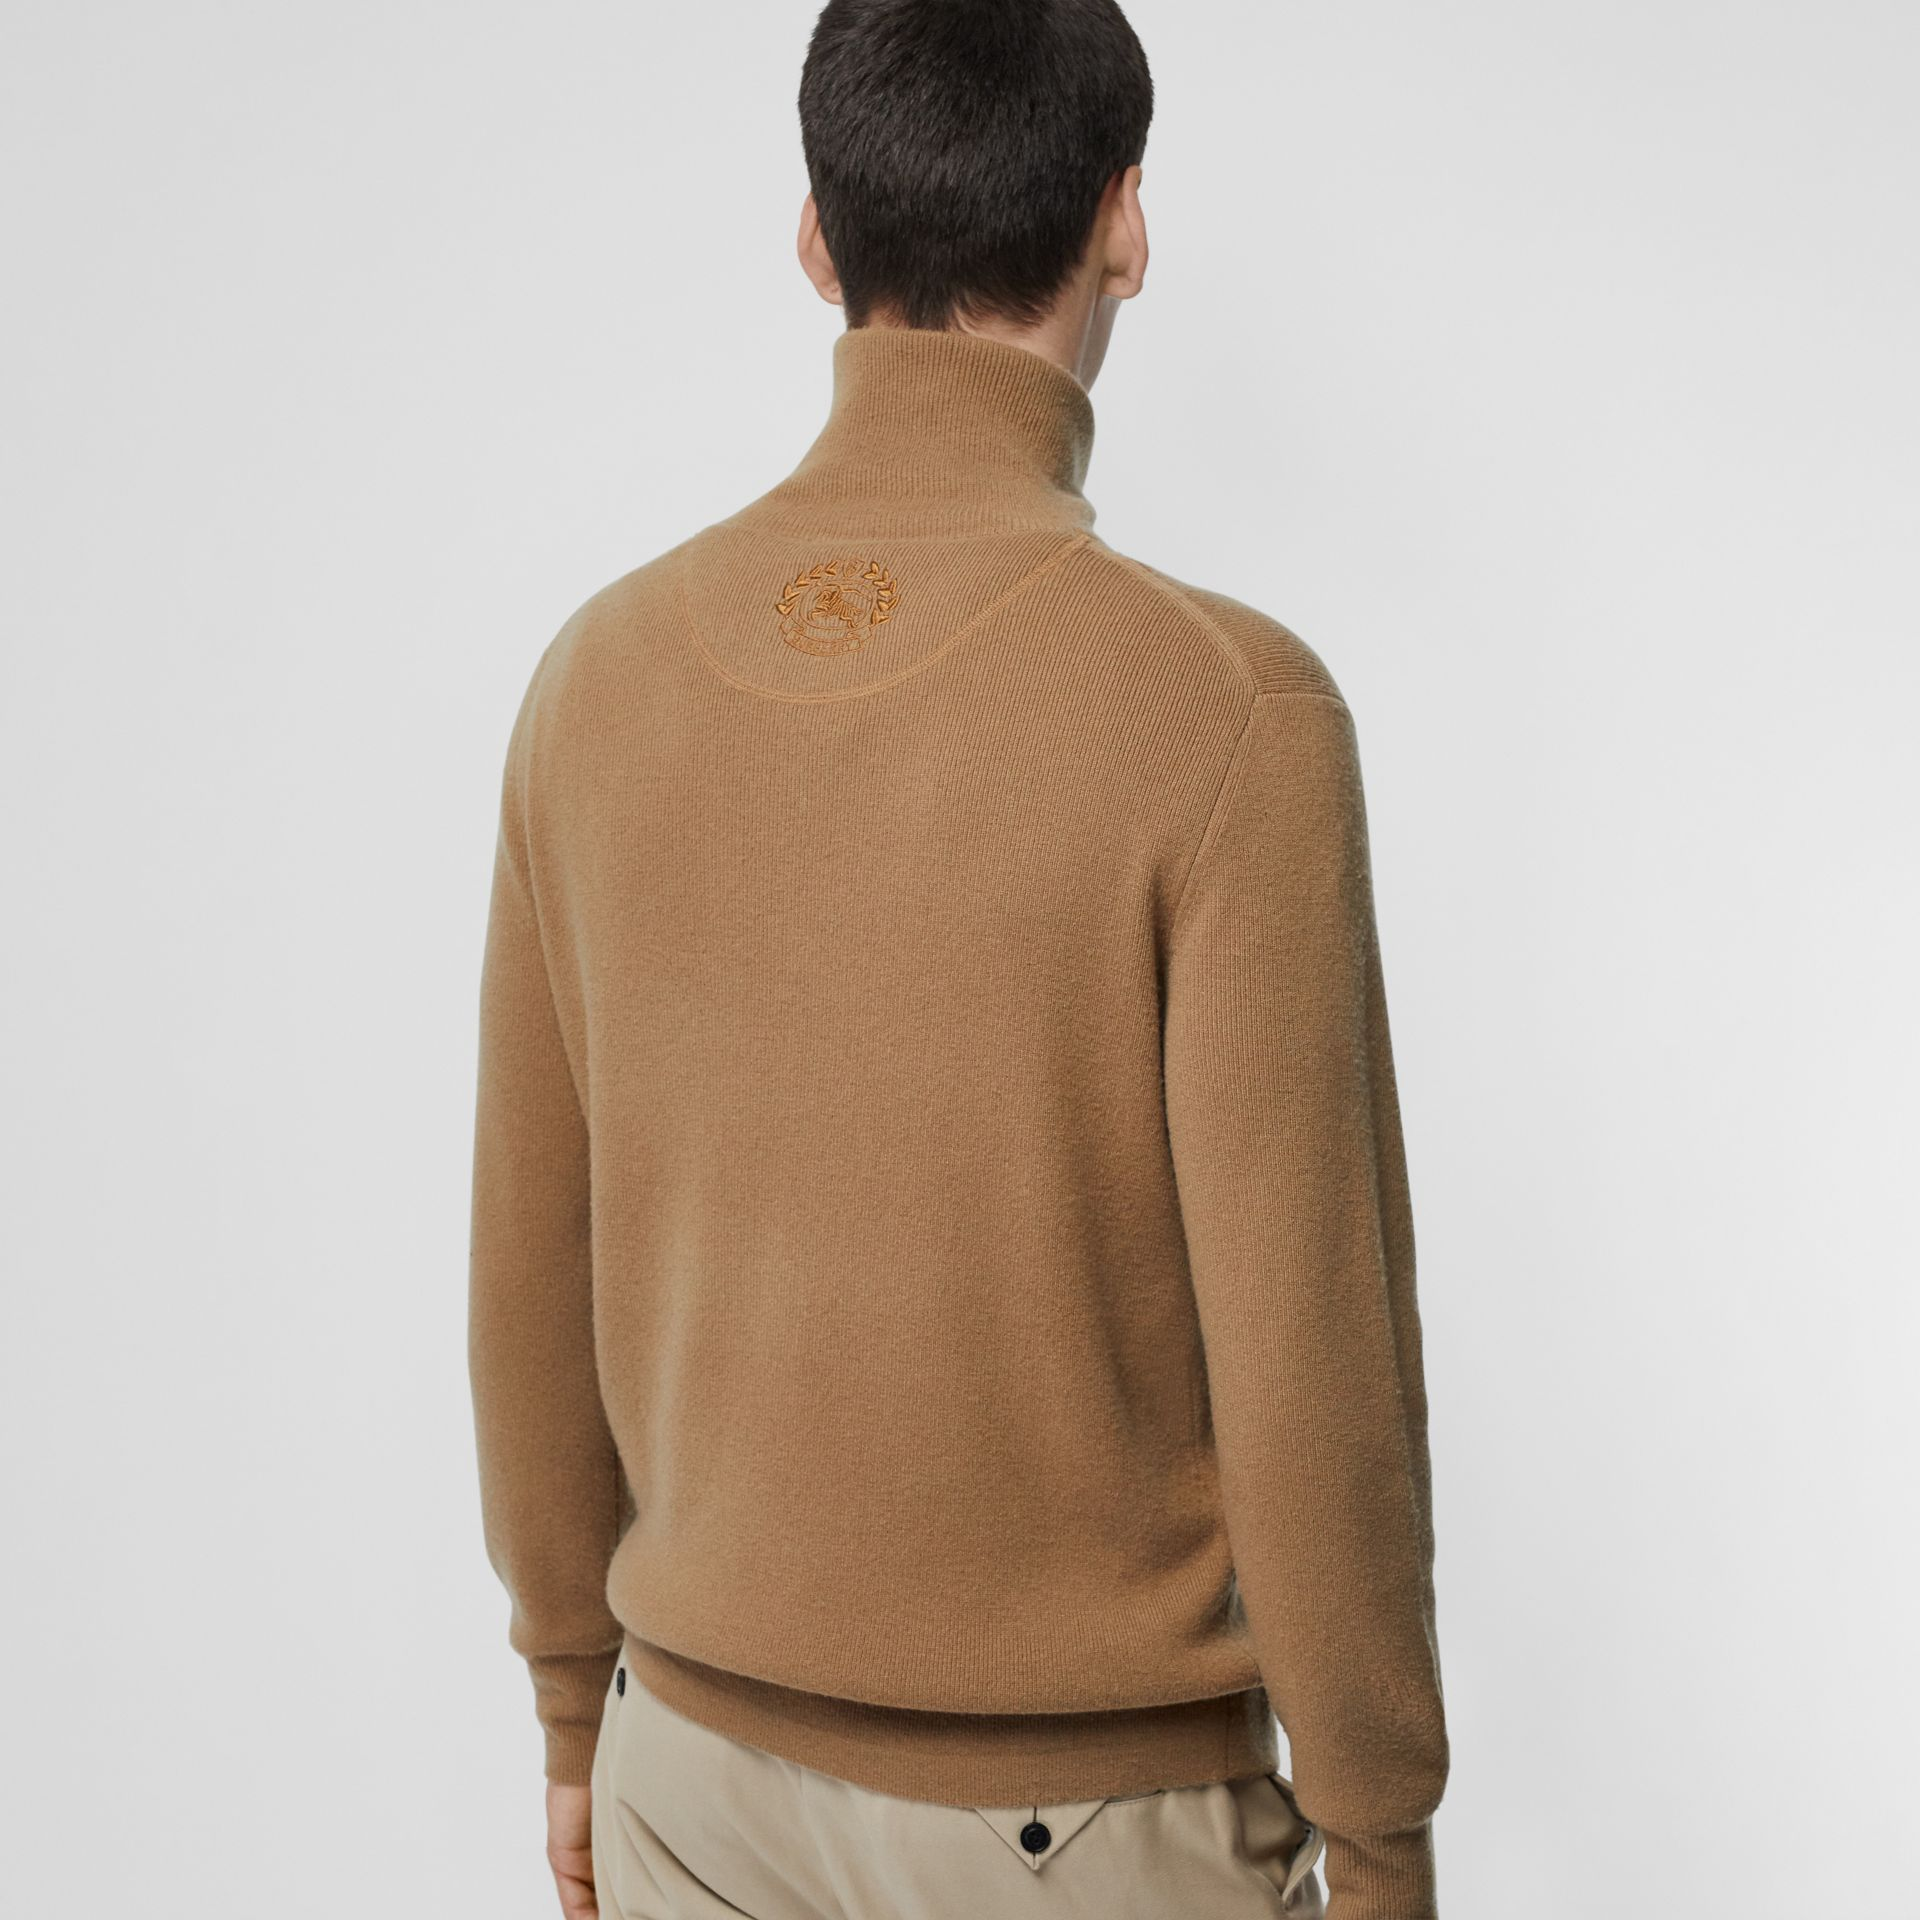 Rib Knit Cashmere Half-zip Sweater in Camel - Men | Burberry United States - gallery image 2